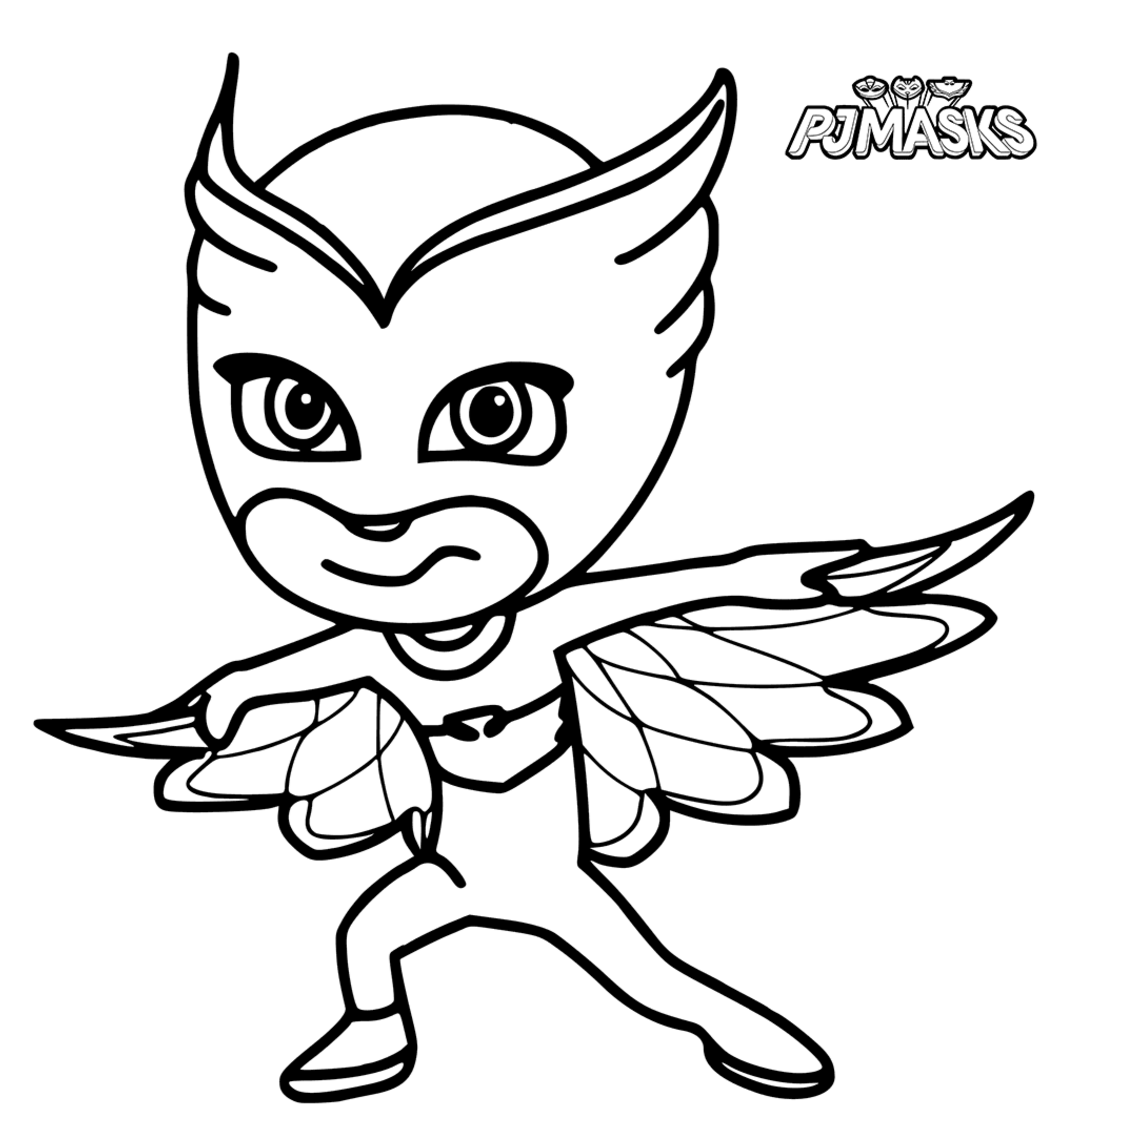 PJ Masks Owlette Coloring Pages